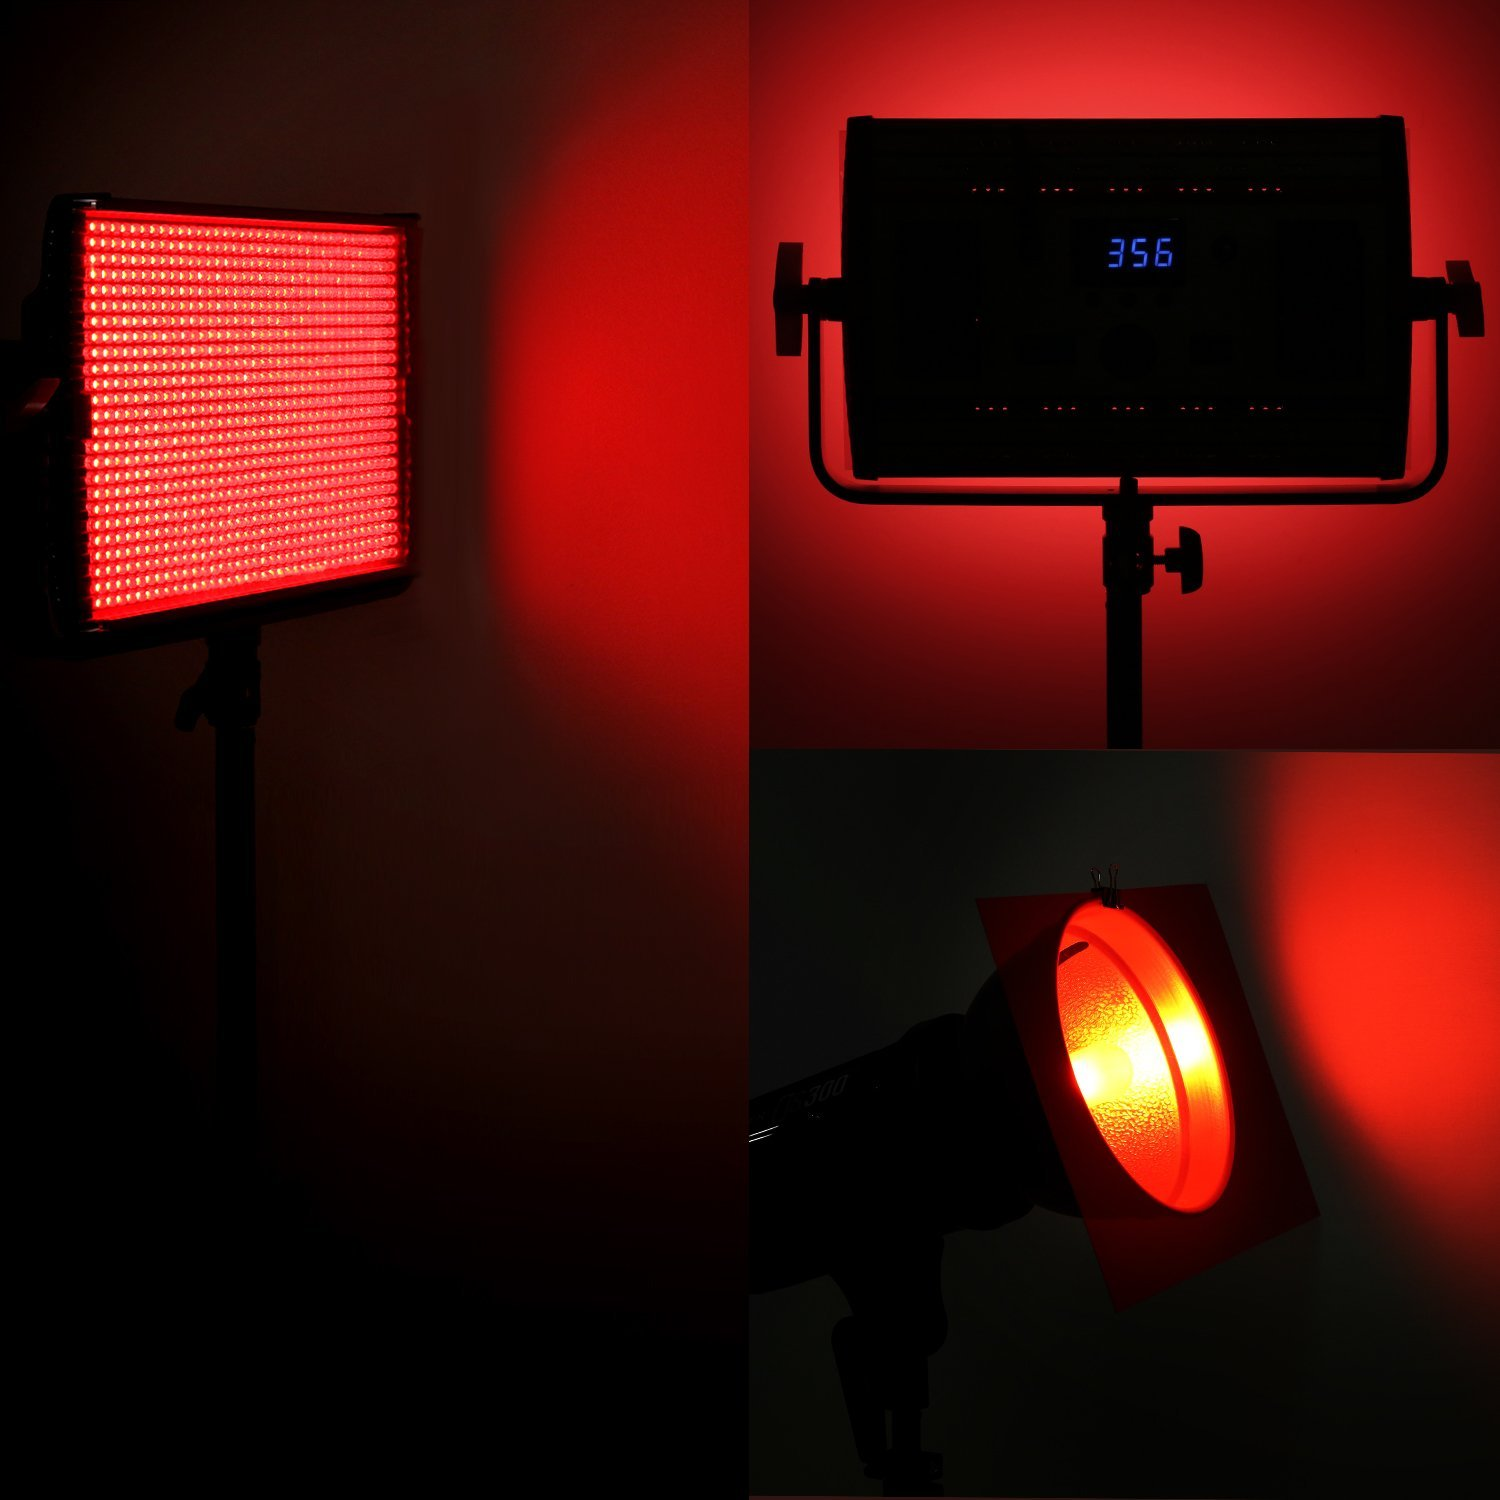 12x12 red high temperature resistant gel filter for studio strobe 12x12 red high temperature resistant gel filter for photo studio strobe flash light and led light arubaitofo Image collections